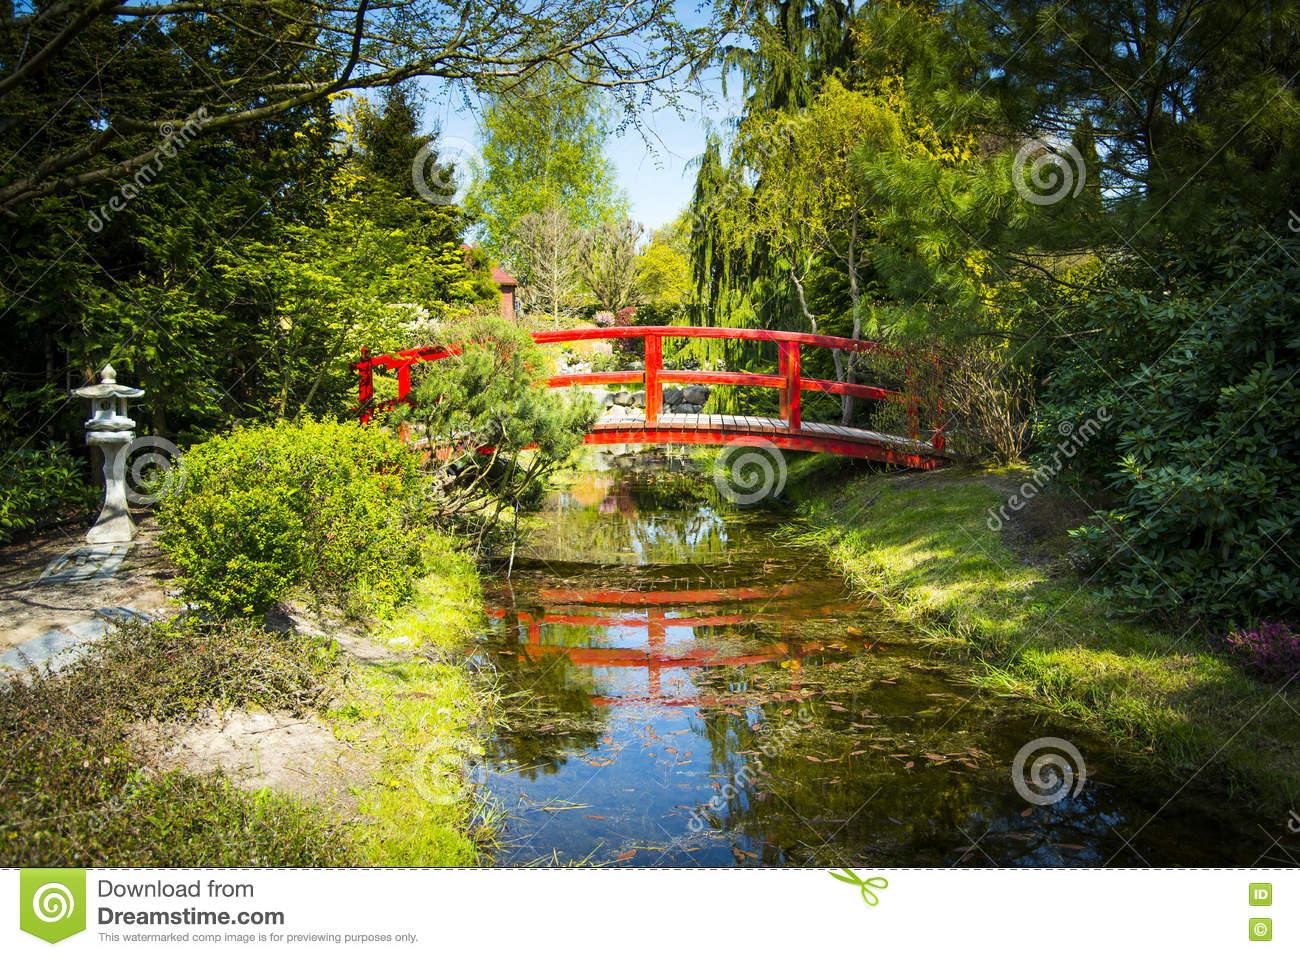 passerelle en bois dans le jardin japonais photo stock image 71561198. Black Bedroom Furniture Sets. Home Design Ideas